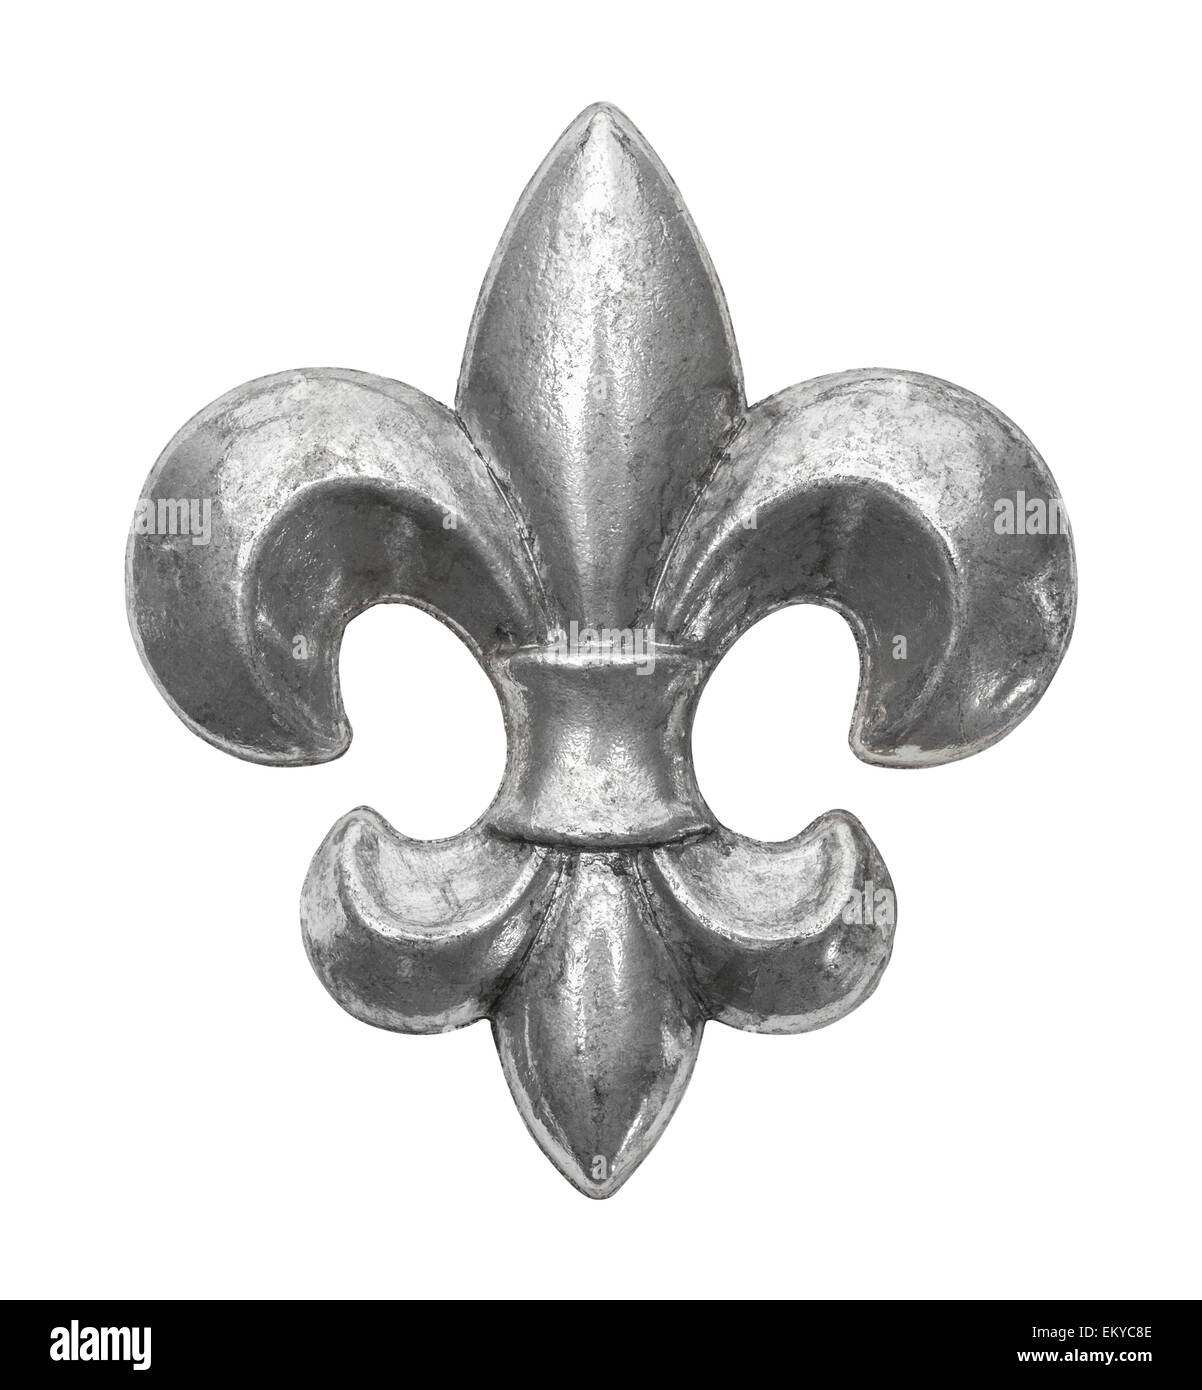 Decorative metal french royal symbol isolated on white background decorative metal french royal symbol isolated on white background biocorpaavc Gallery